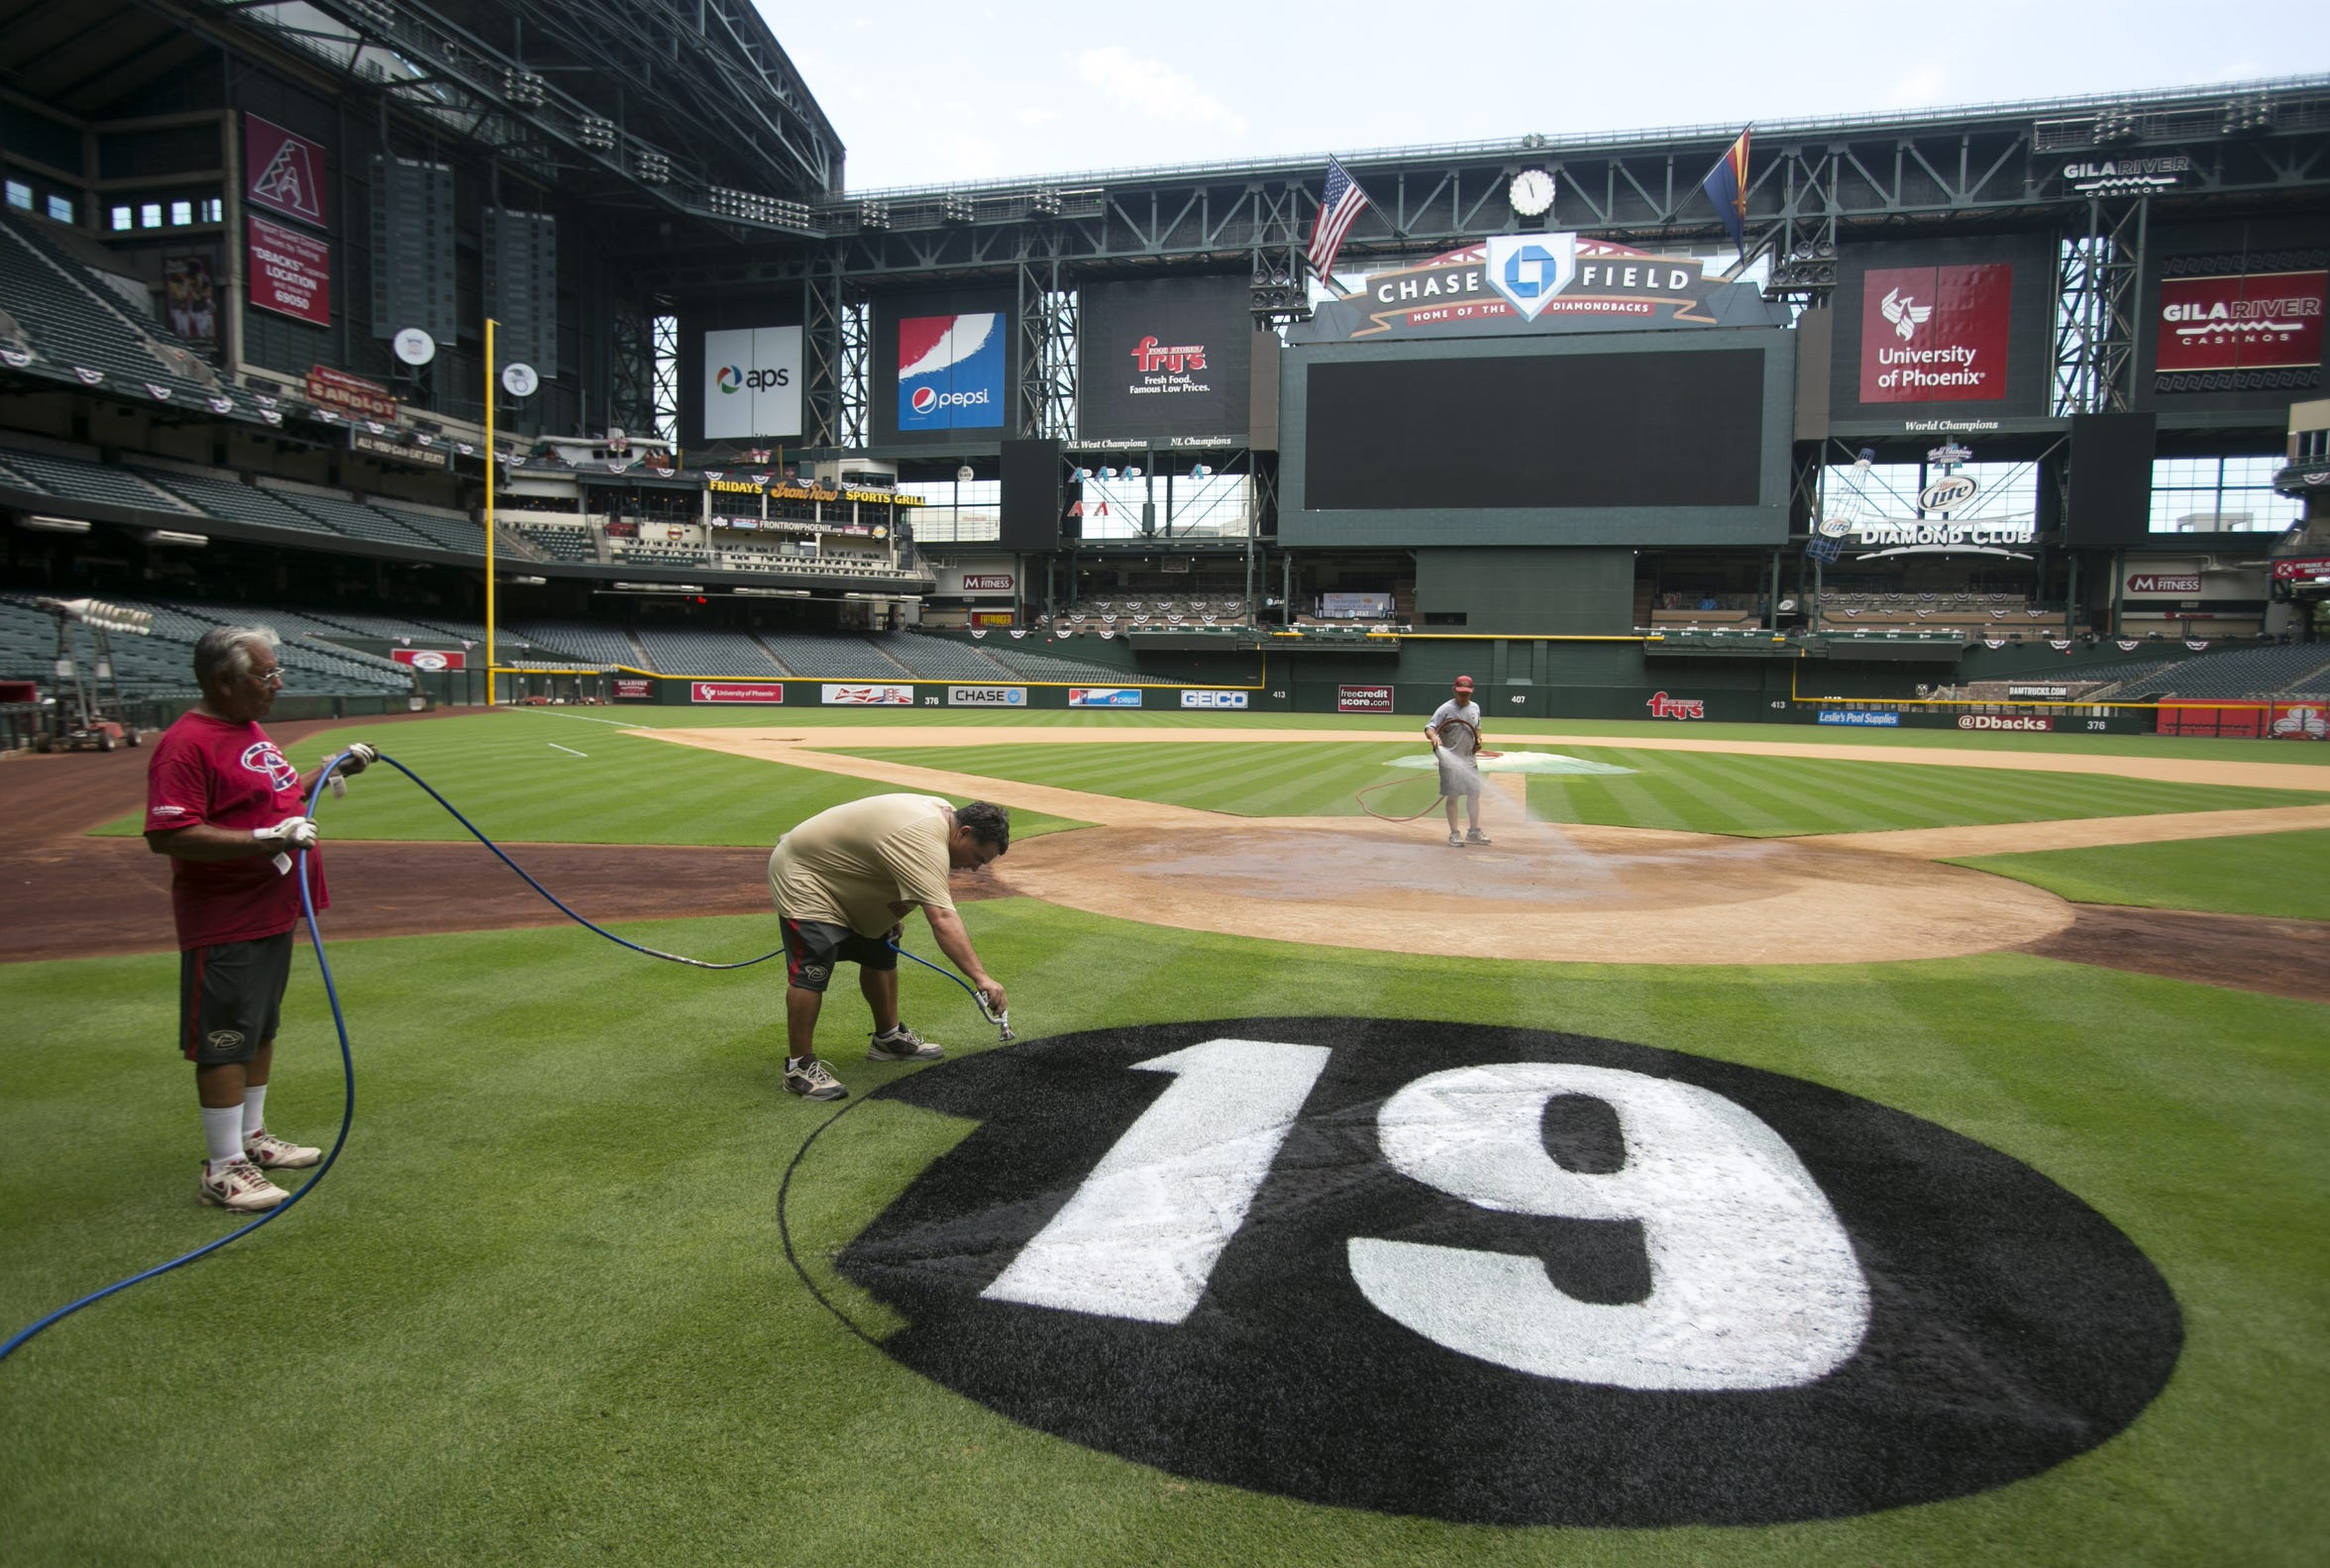 The Diamondbacks honored the Granite Mountain Hotshots with special patches on their jersey and a logo behind home plate.